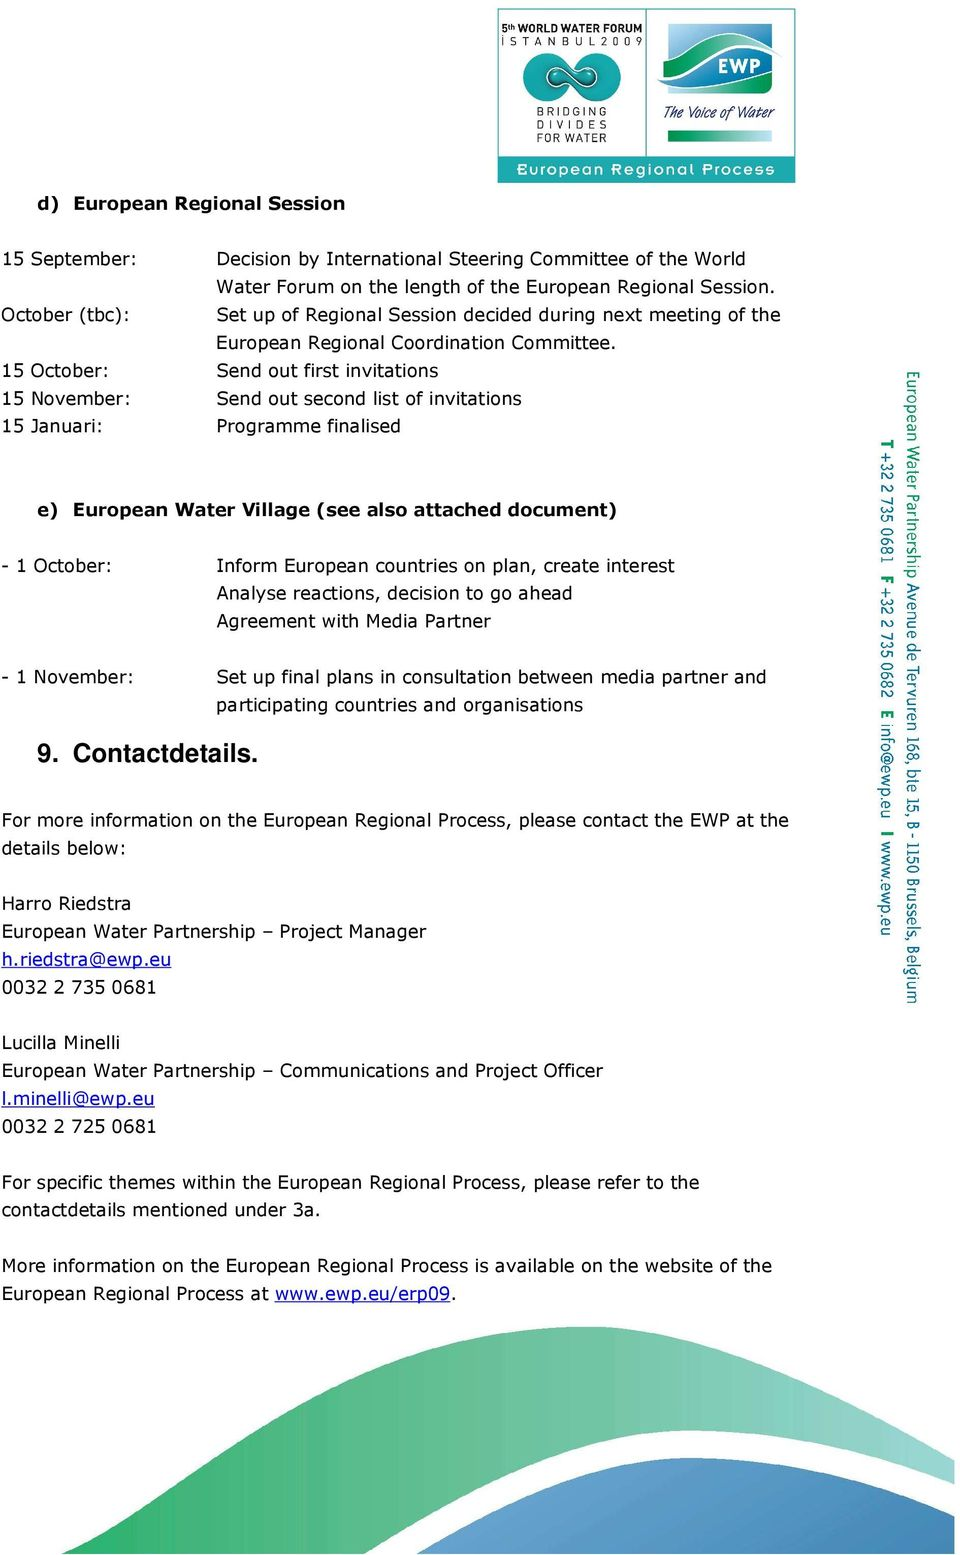 15 October: Send out first invitations 15 November: Send out second list of invitations 15 Januari: Programme finalised e) European Water Village (see also attached document) - 1 October: Inform